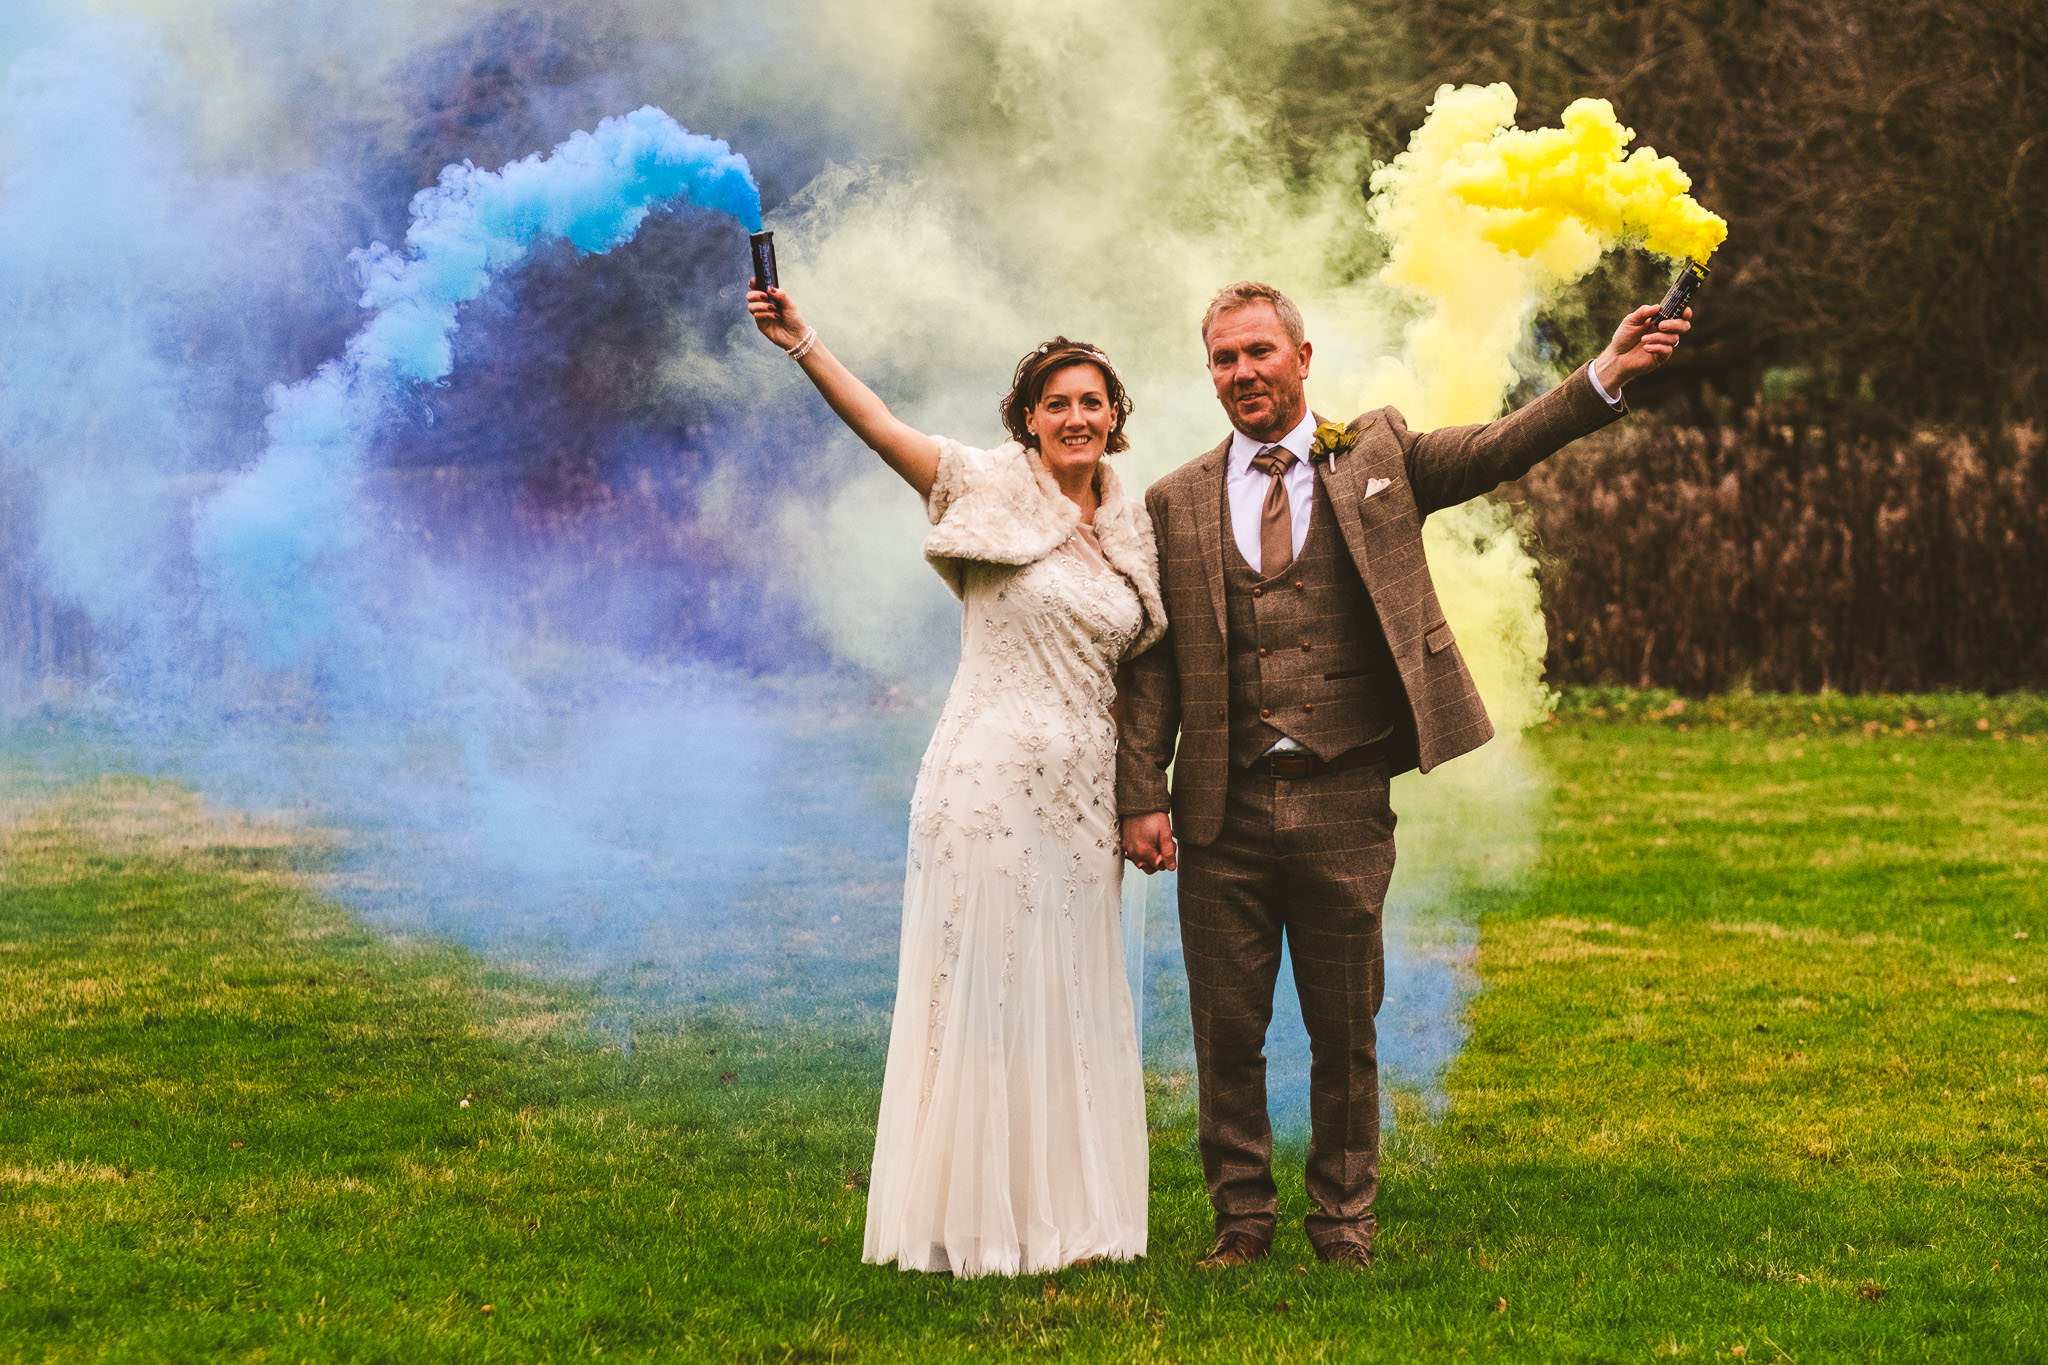 Angela and dave wanted to use smoke bombs during their bride and groom portrait session and I jumped at the chance!